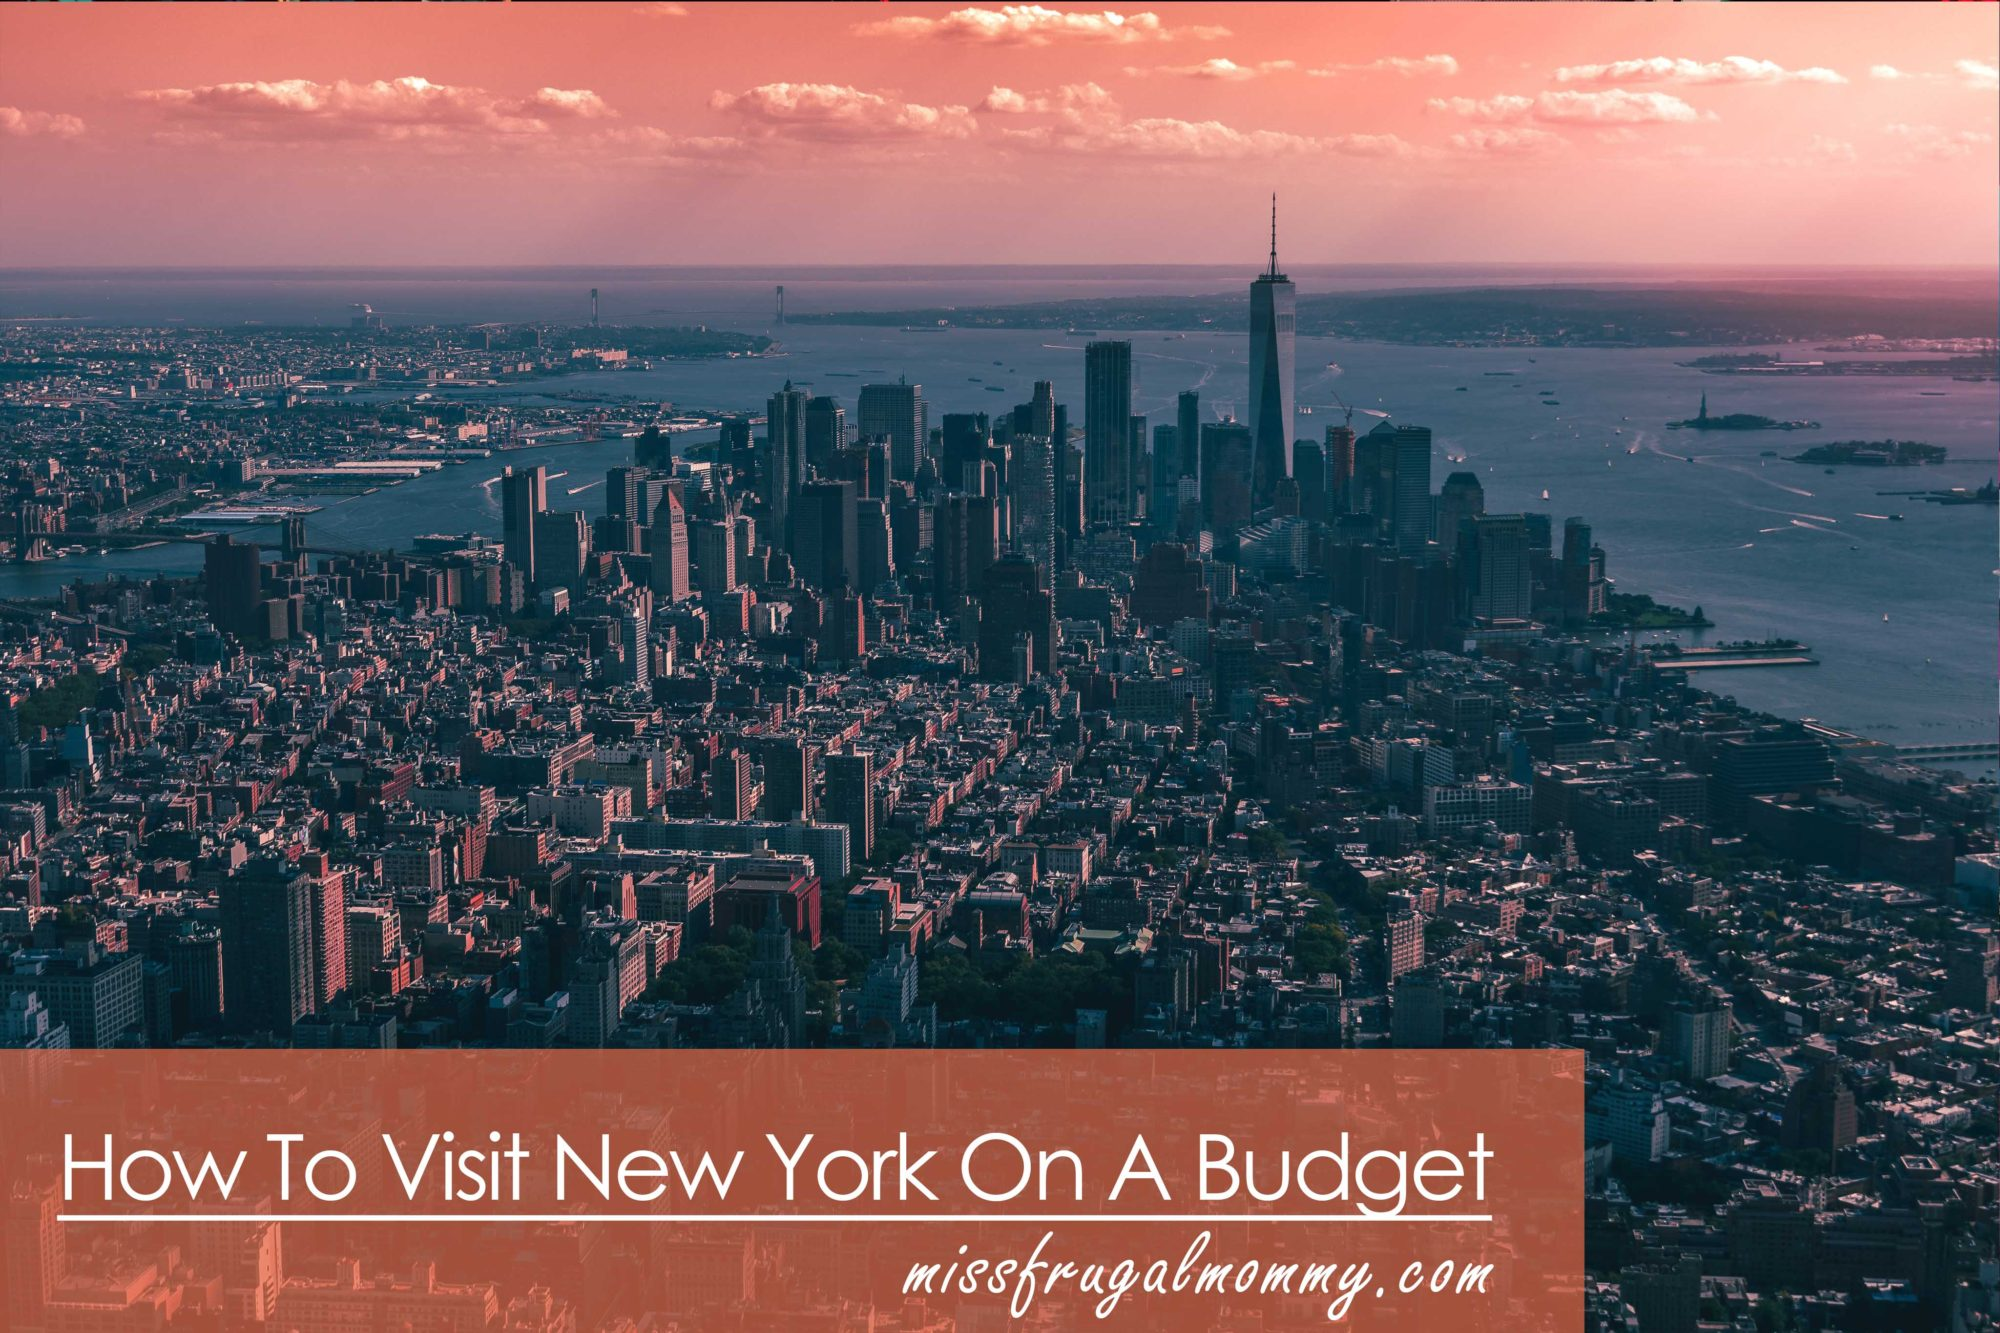 How to Visit New York on a Budget